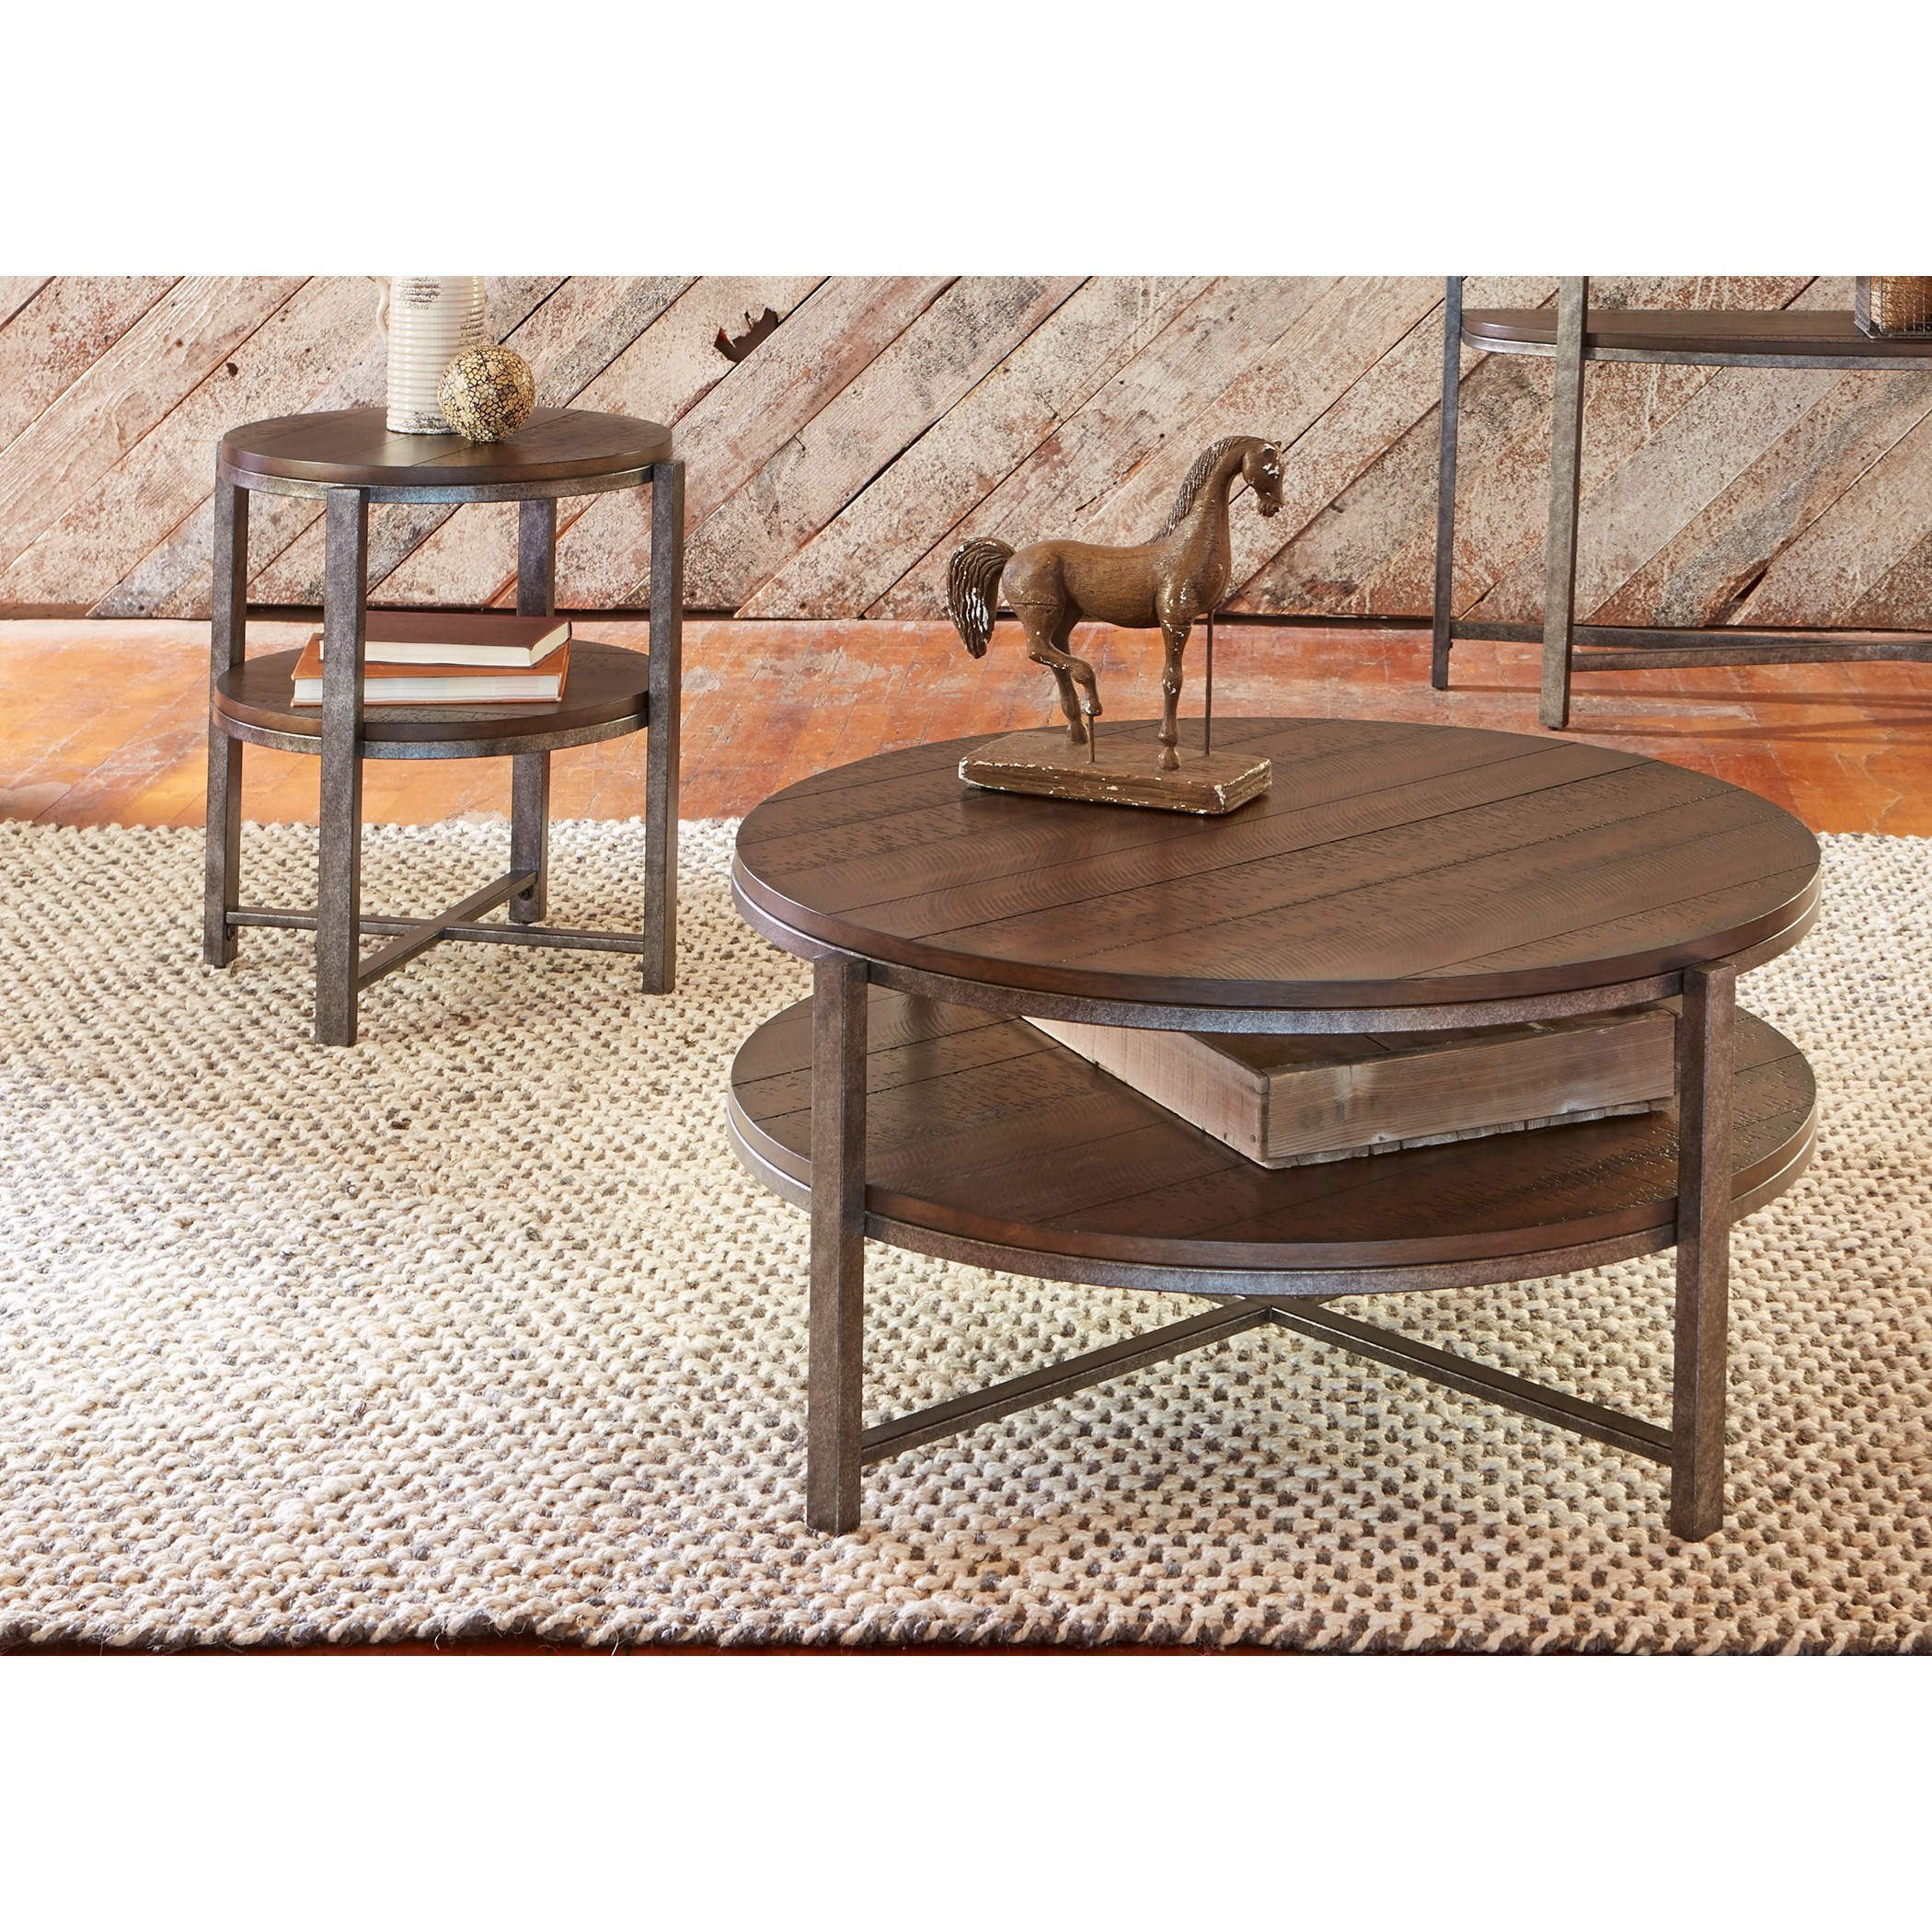 Breckinridge 3 Piece Round Occasional Table Set by Liberty Furniture at Zak's Home